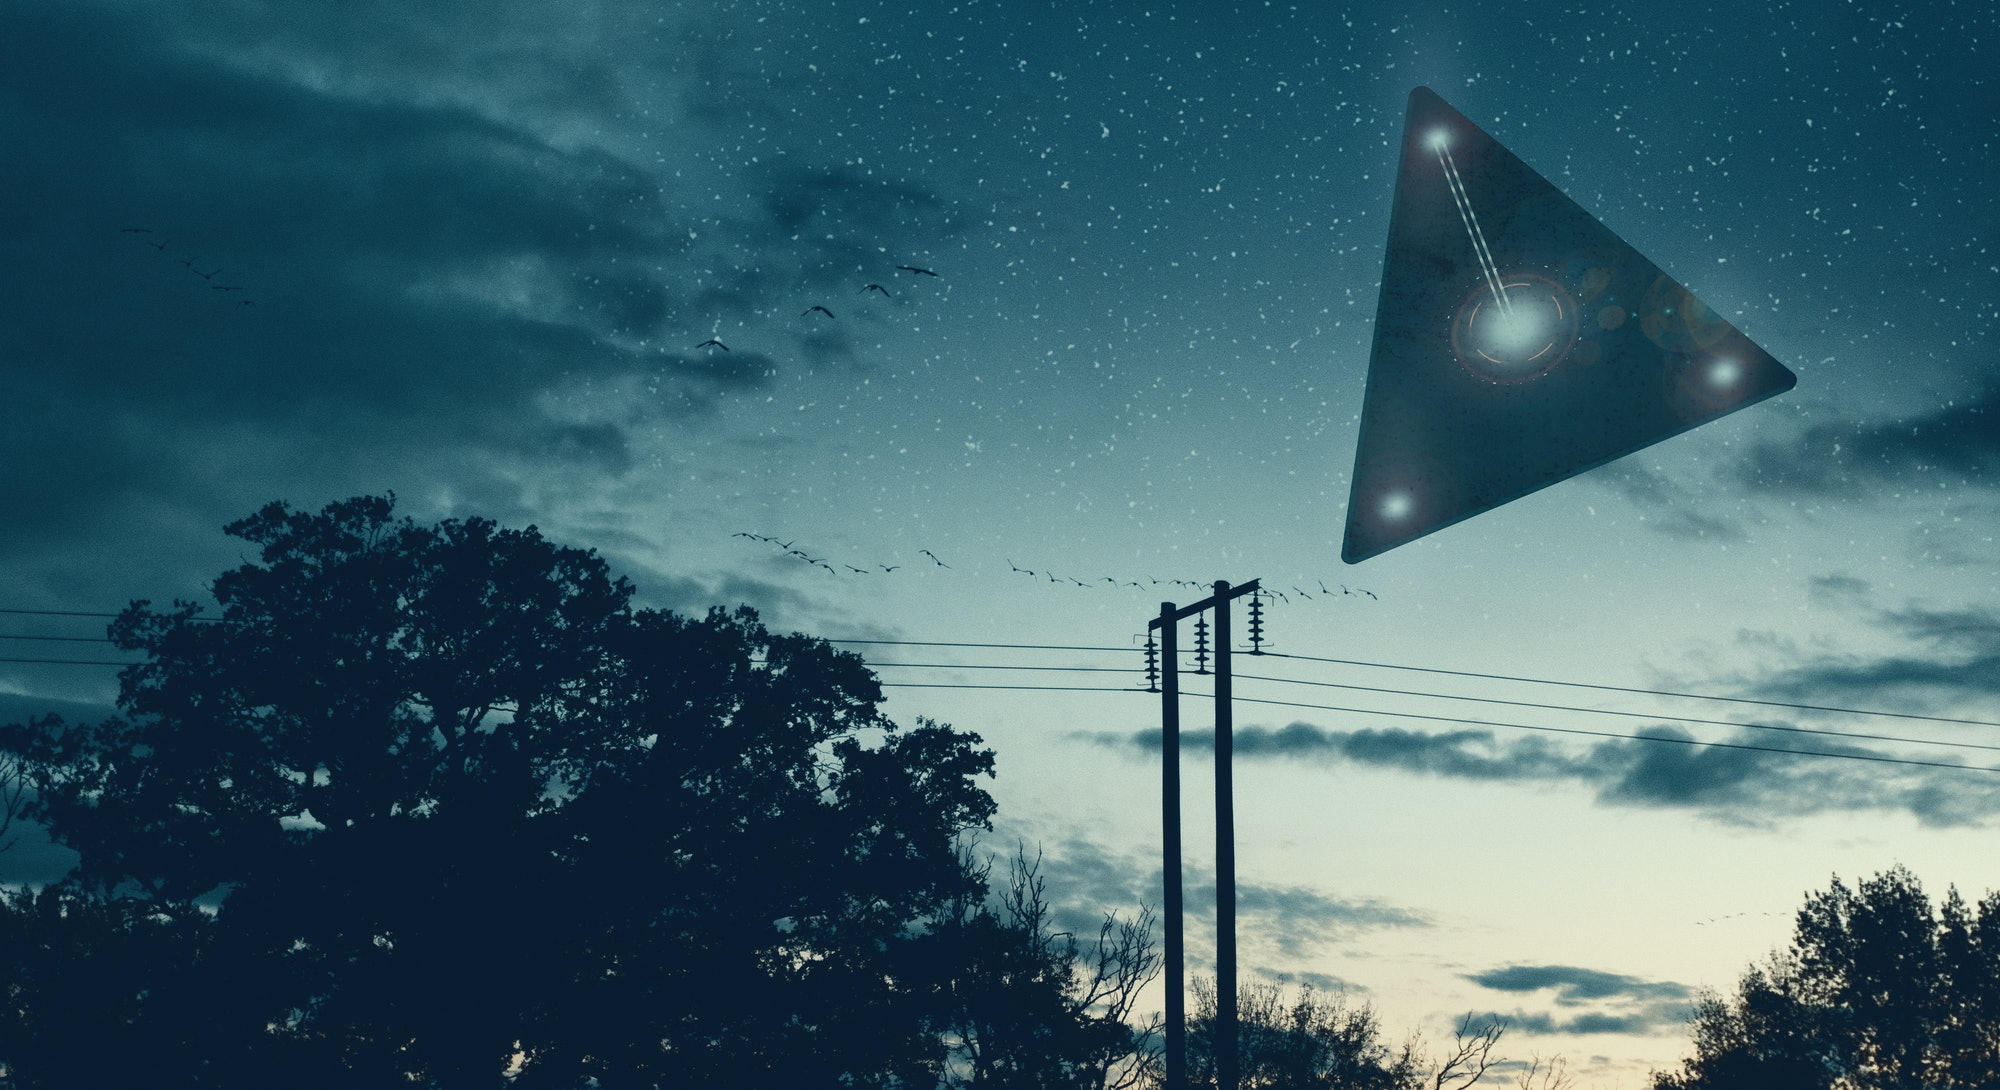 UFO concept. A flying triangle floating above the countryside at night.